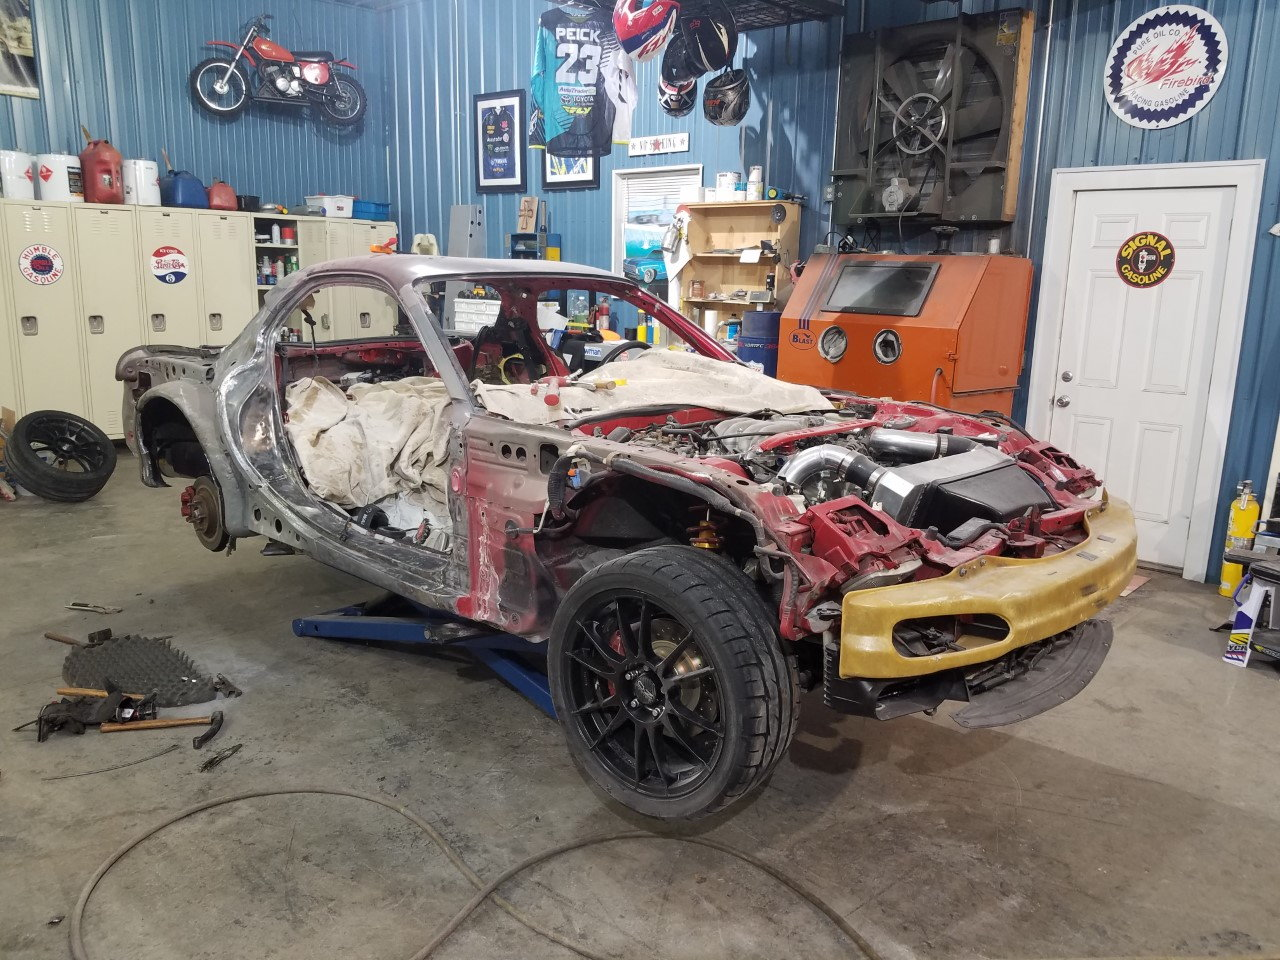 What have I gotten myself into? - Page 3 - RX7Club com